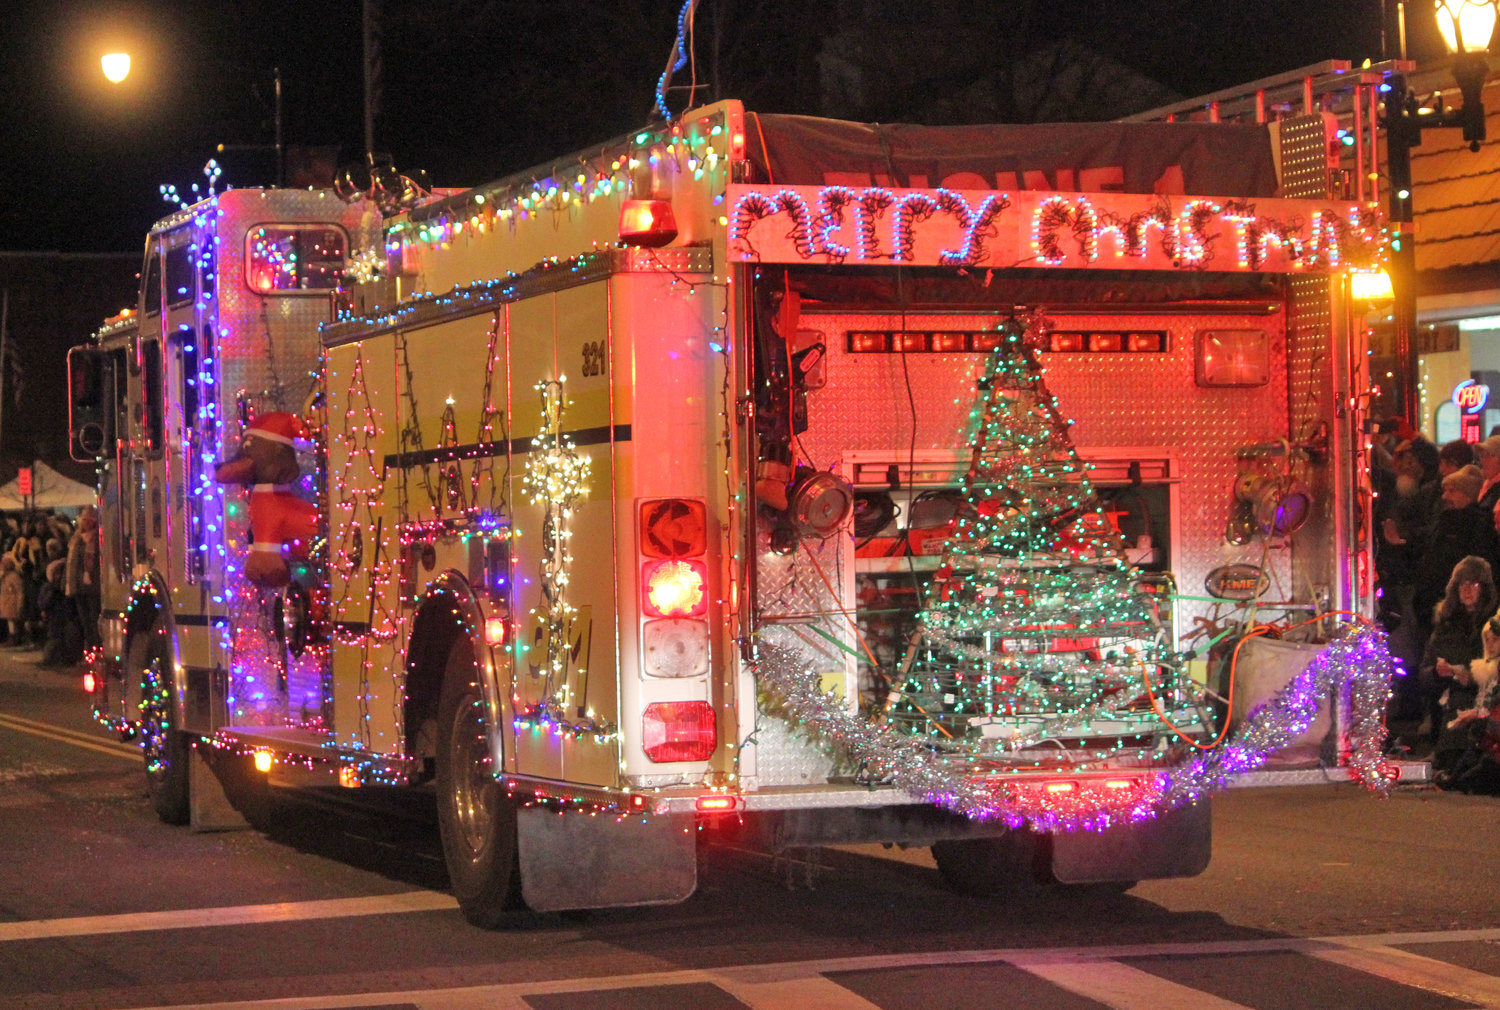 SEASONS GREETINGS — Towns and villages from all over join in to welcome the season of giving for the second annual Canastota Parade of Lights on Saturday, Nov. 30.